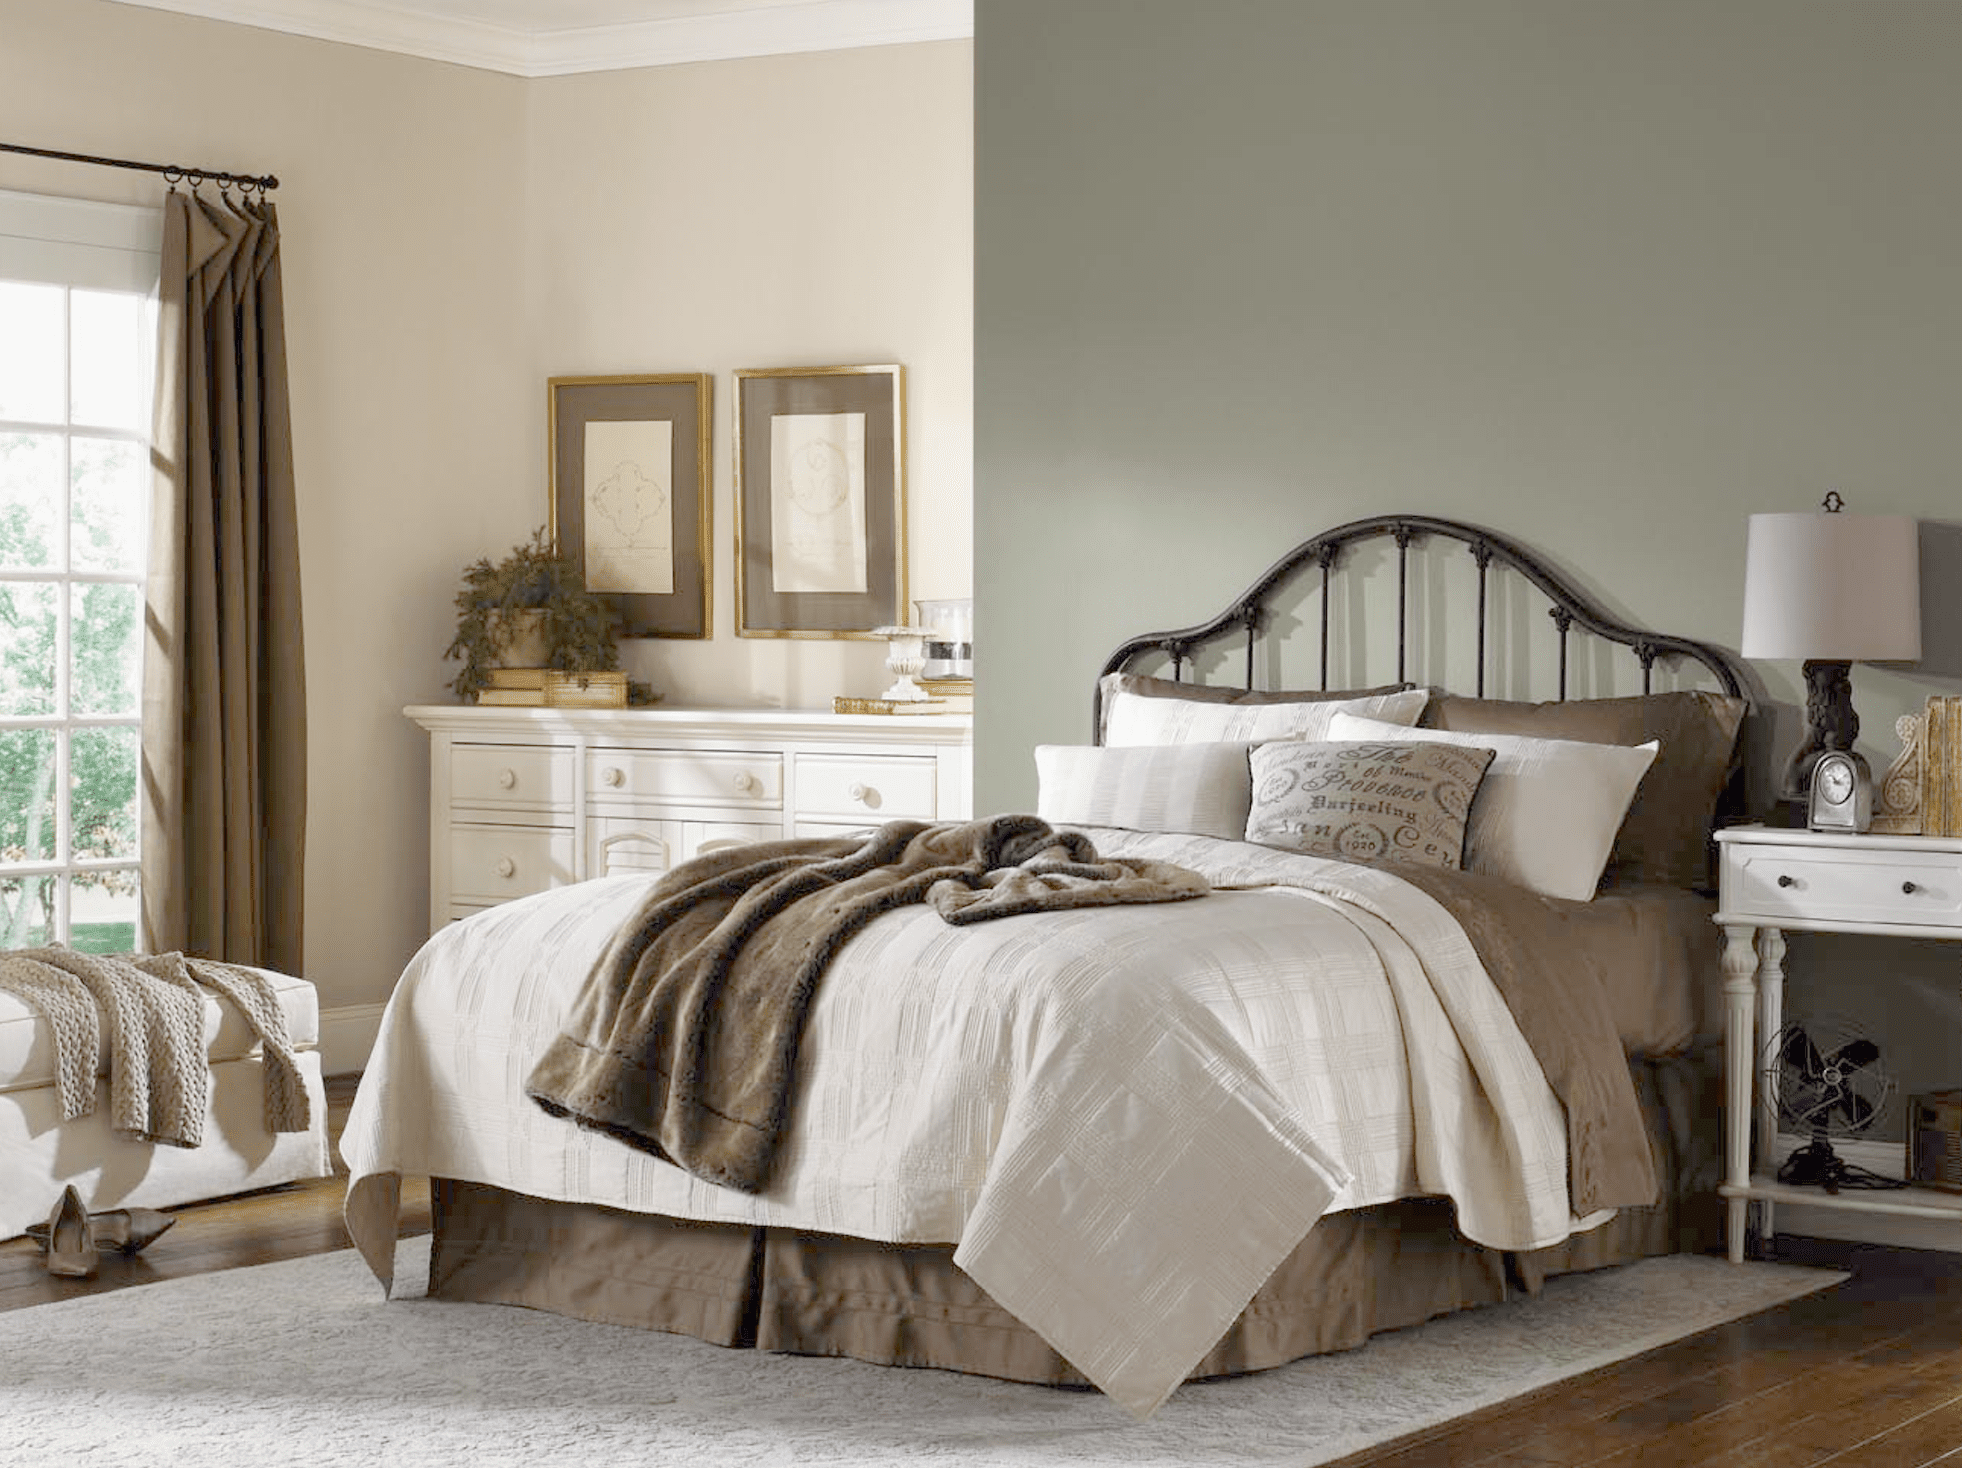 8 relaxing sherwin williams paint colors for bedrooms 14879 | screen shot 2015 03 30 at 4 08 30 pm 56a192e65f9b58b7d0c0c291